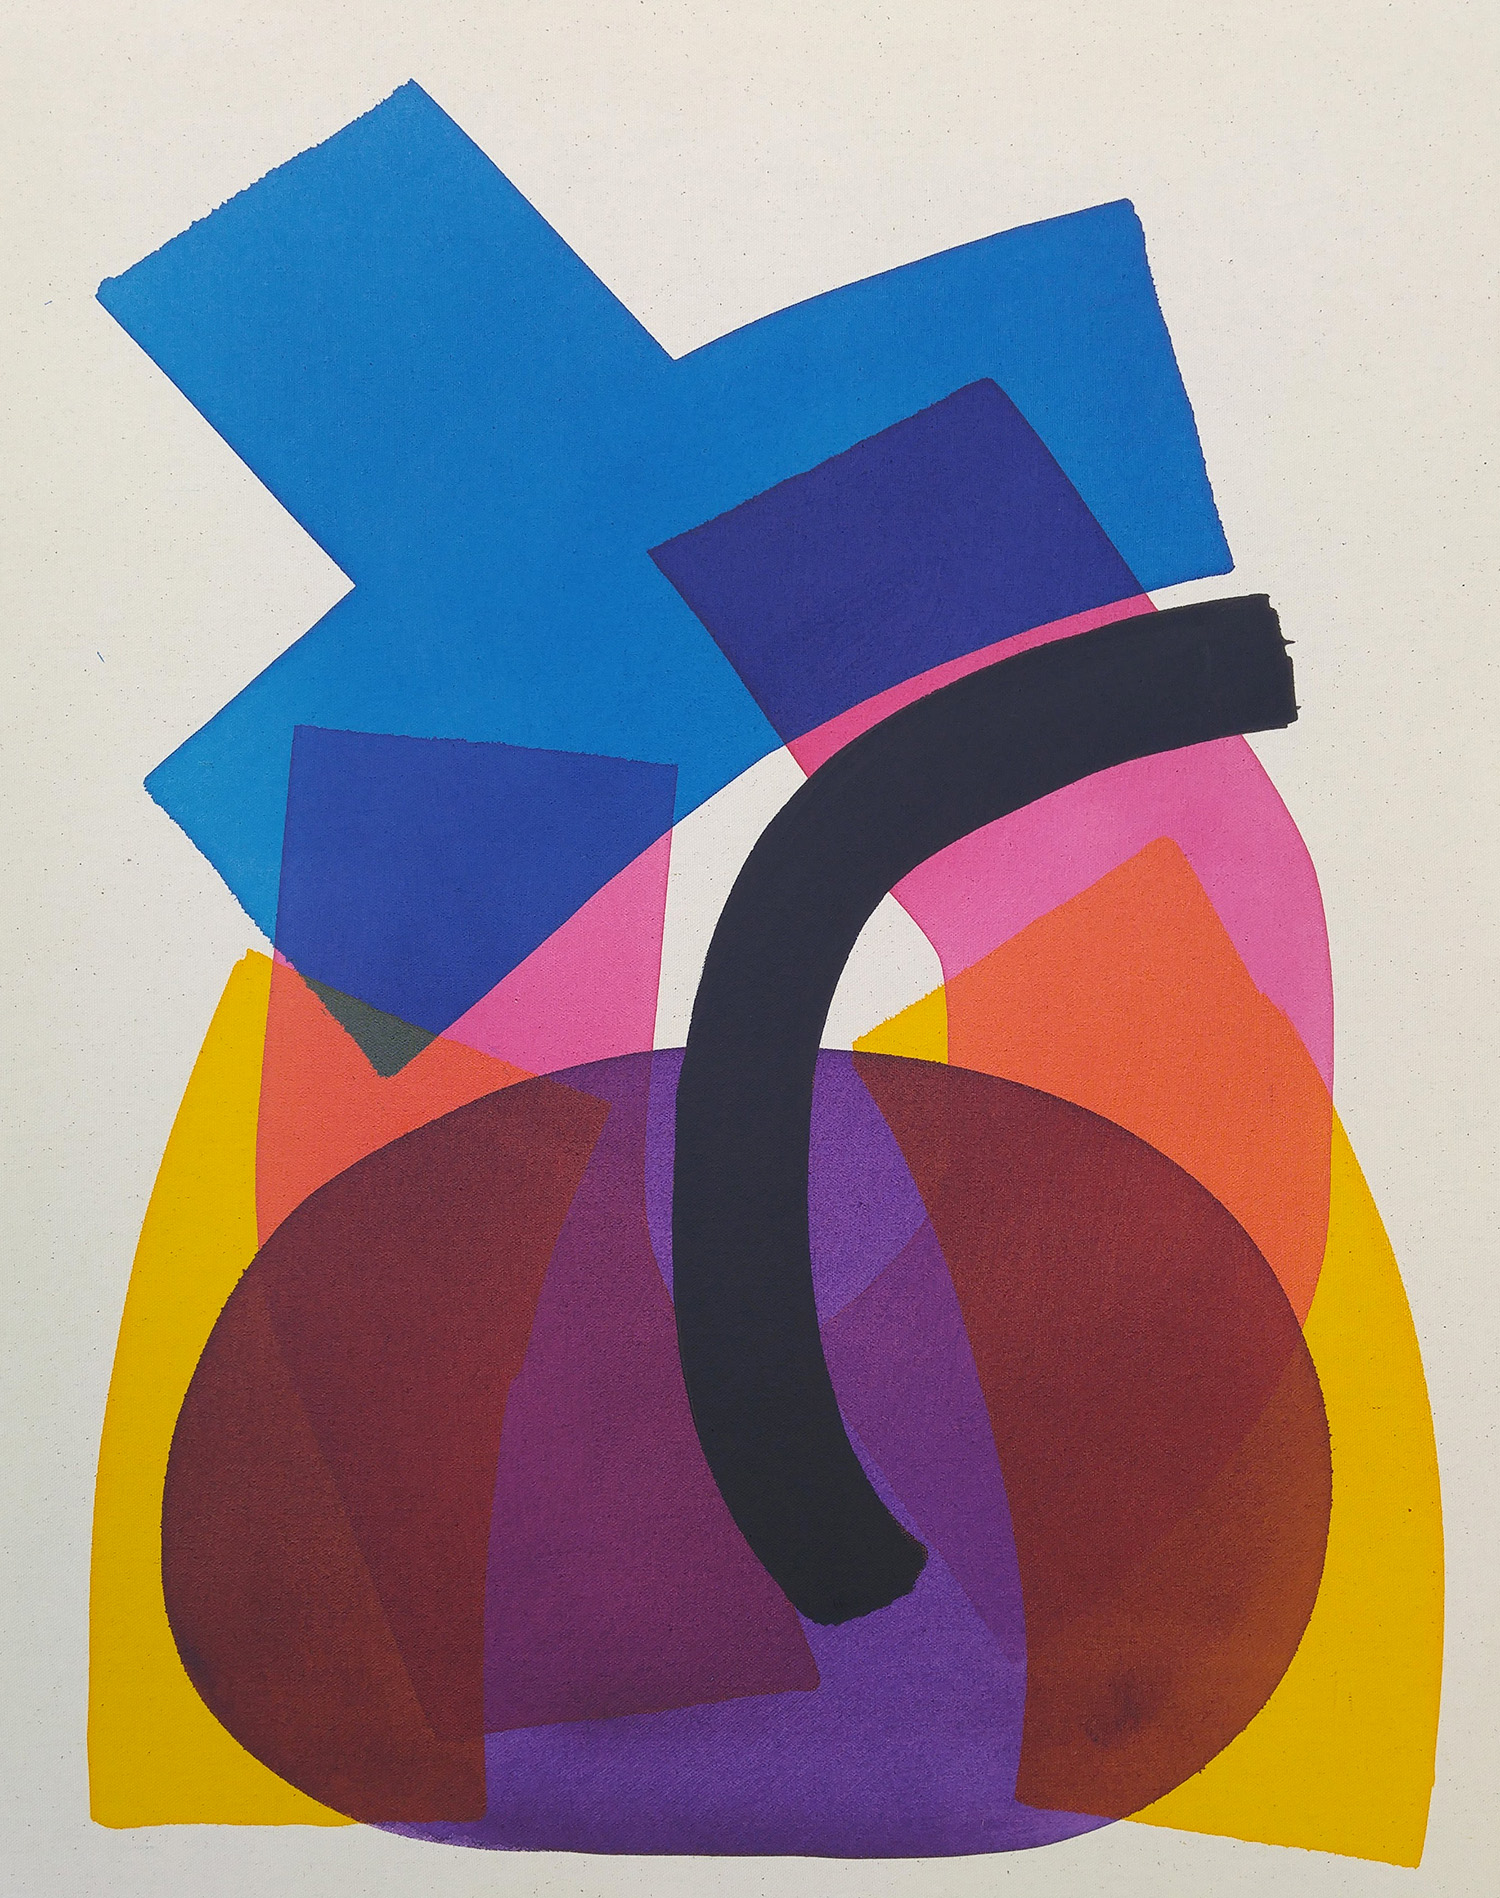 ARON HILL, Colour Blocks 1, ink & paint on prepared raw canvas, 30 x 24 in.